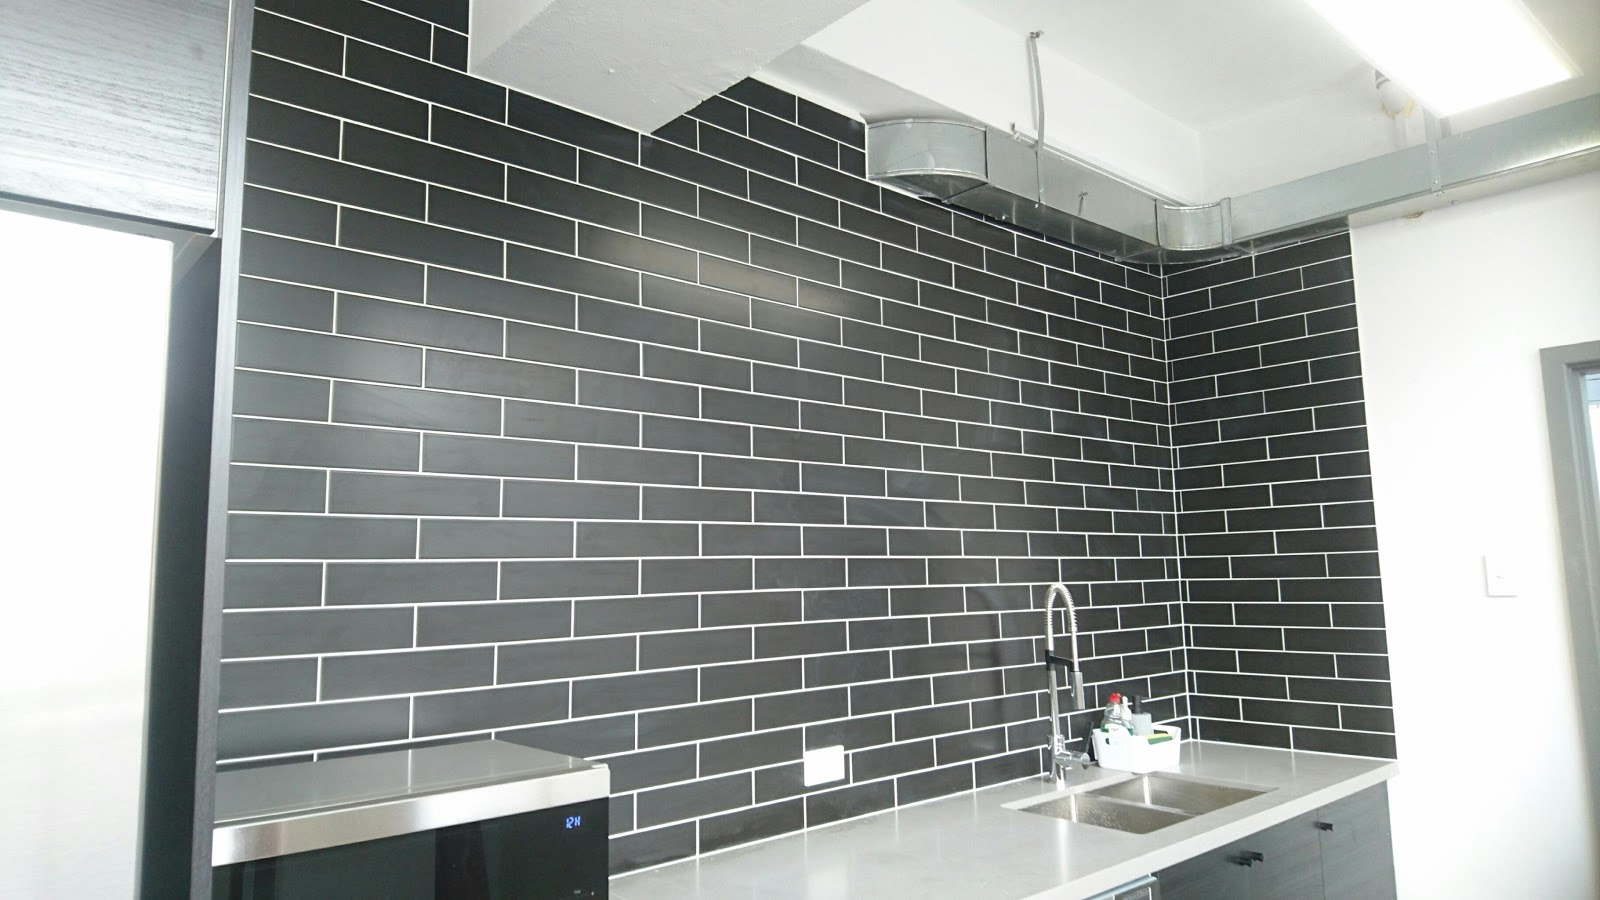 R u tiling black glossy subway tiles with white grout definitely black glossy subway tiles with white grout definitely a feature of this business now dailygadgetfo Choice Image